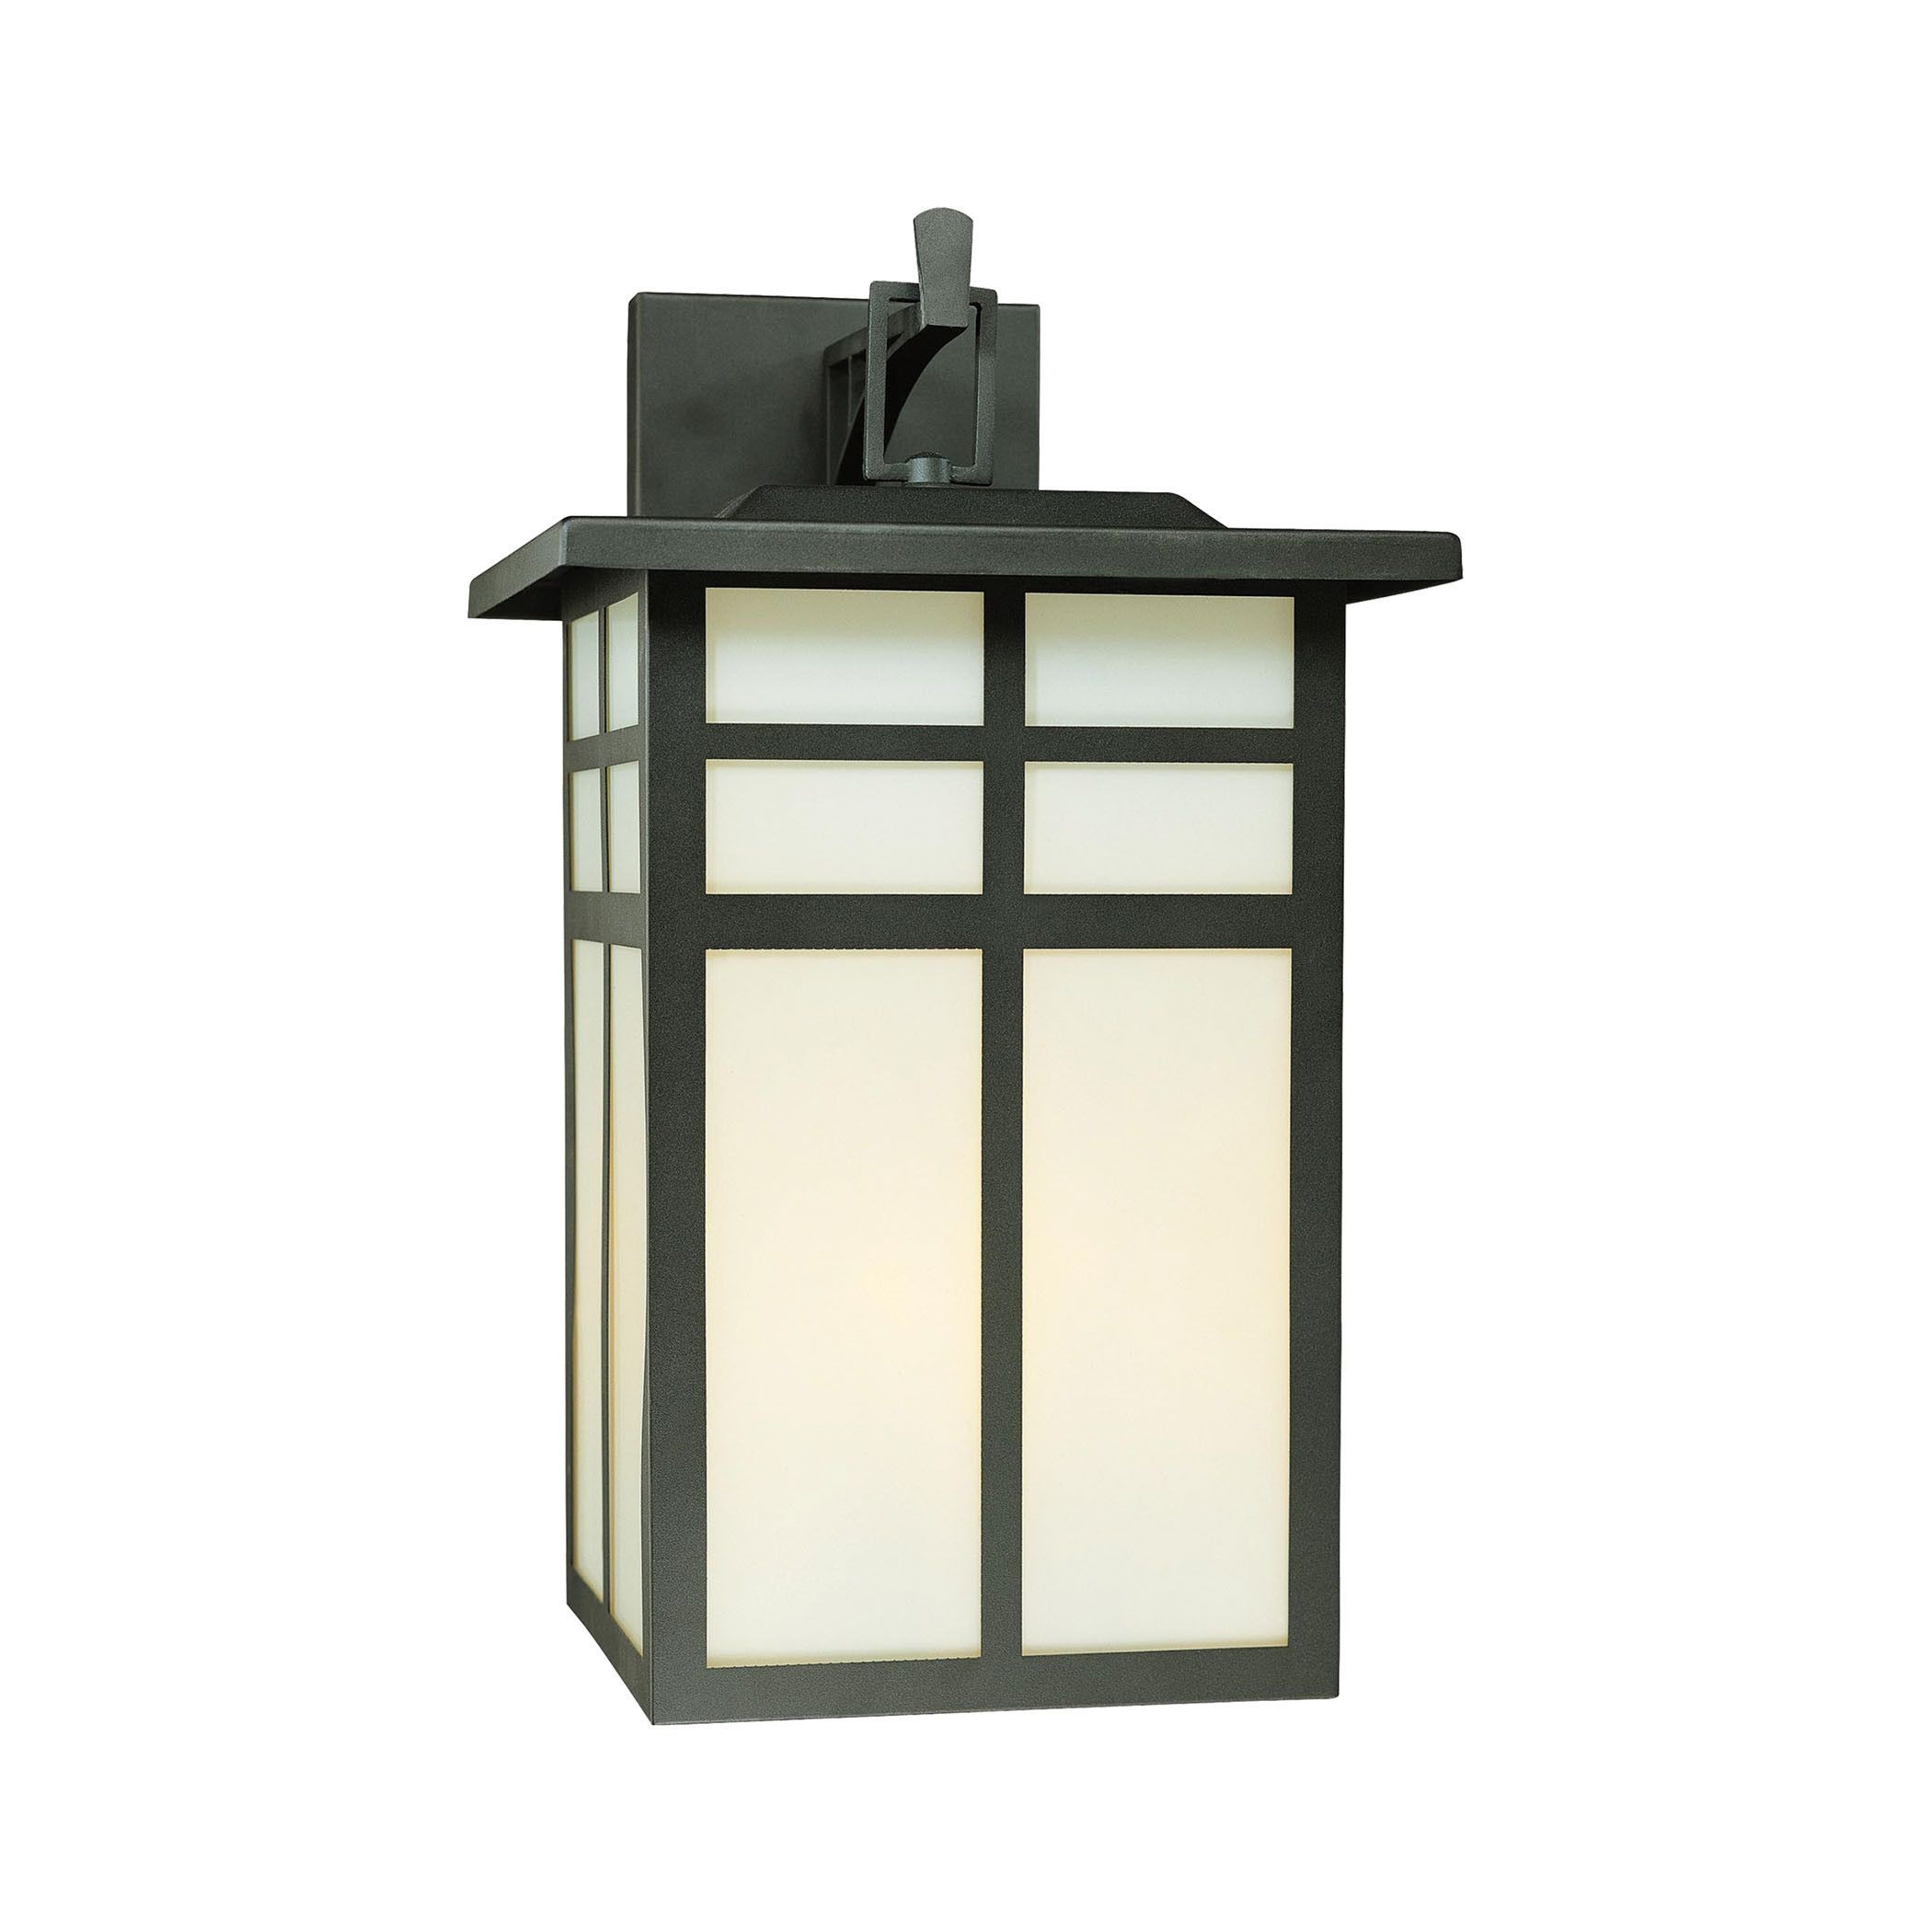 Lake thomas point transitional exterior - Thomas Lighting Sl91067 Mission Collection Black Finish Transitional Wall Sconce